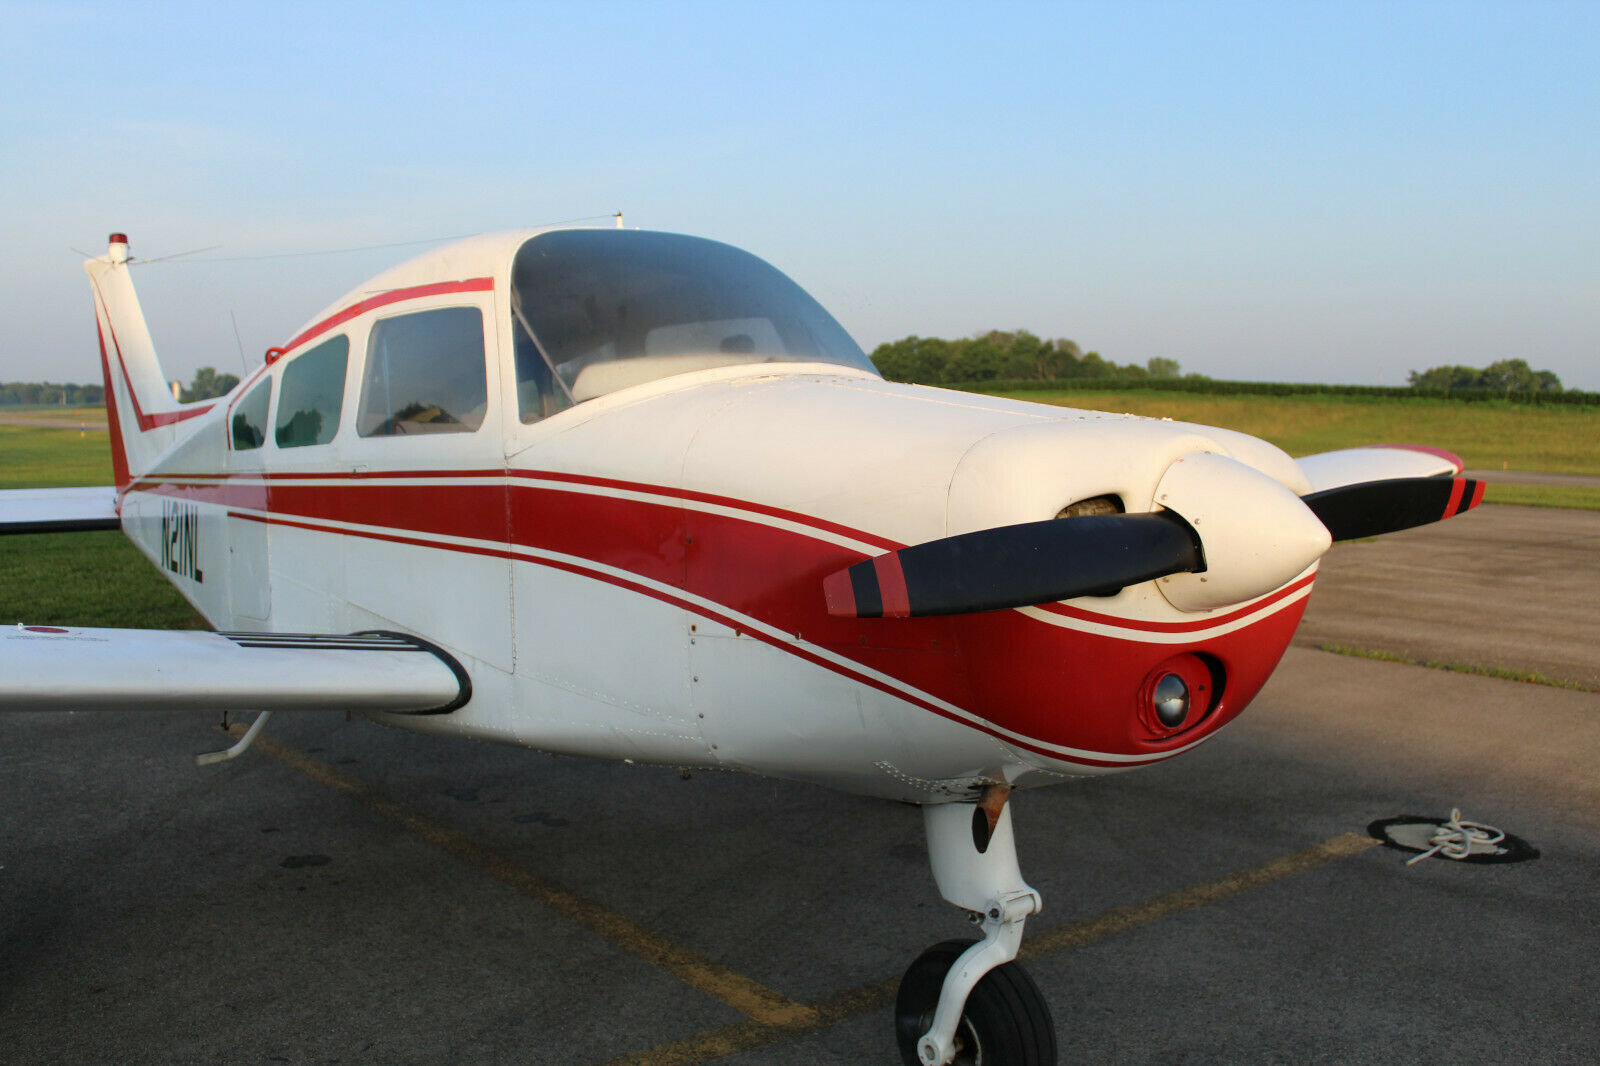 low time 1967 Beechcraft A23A Musketeer aircraft